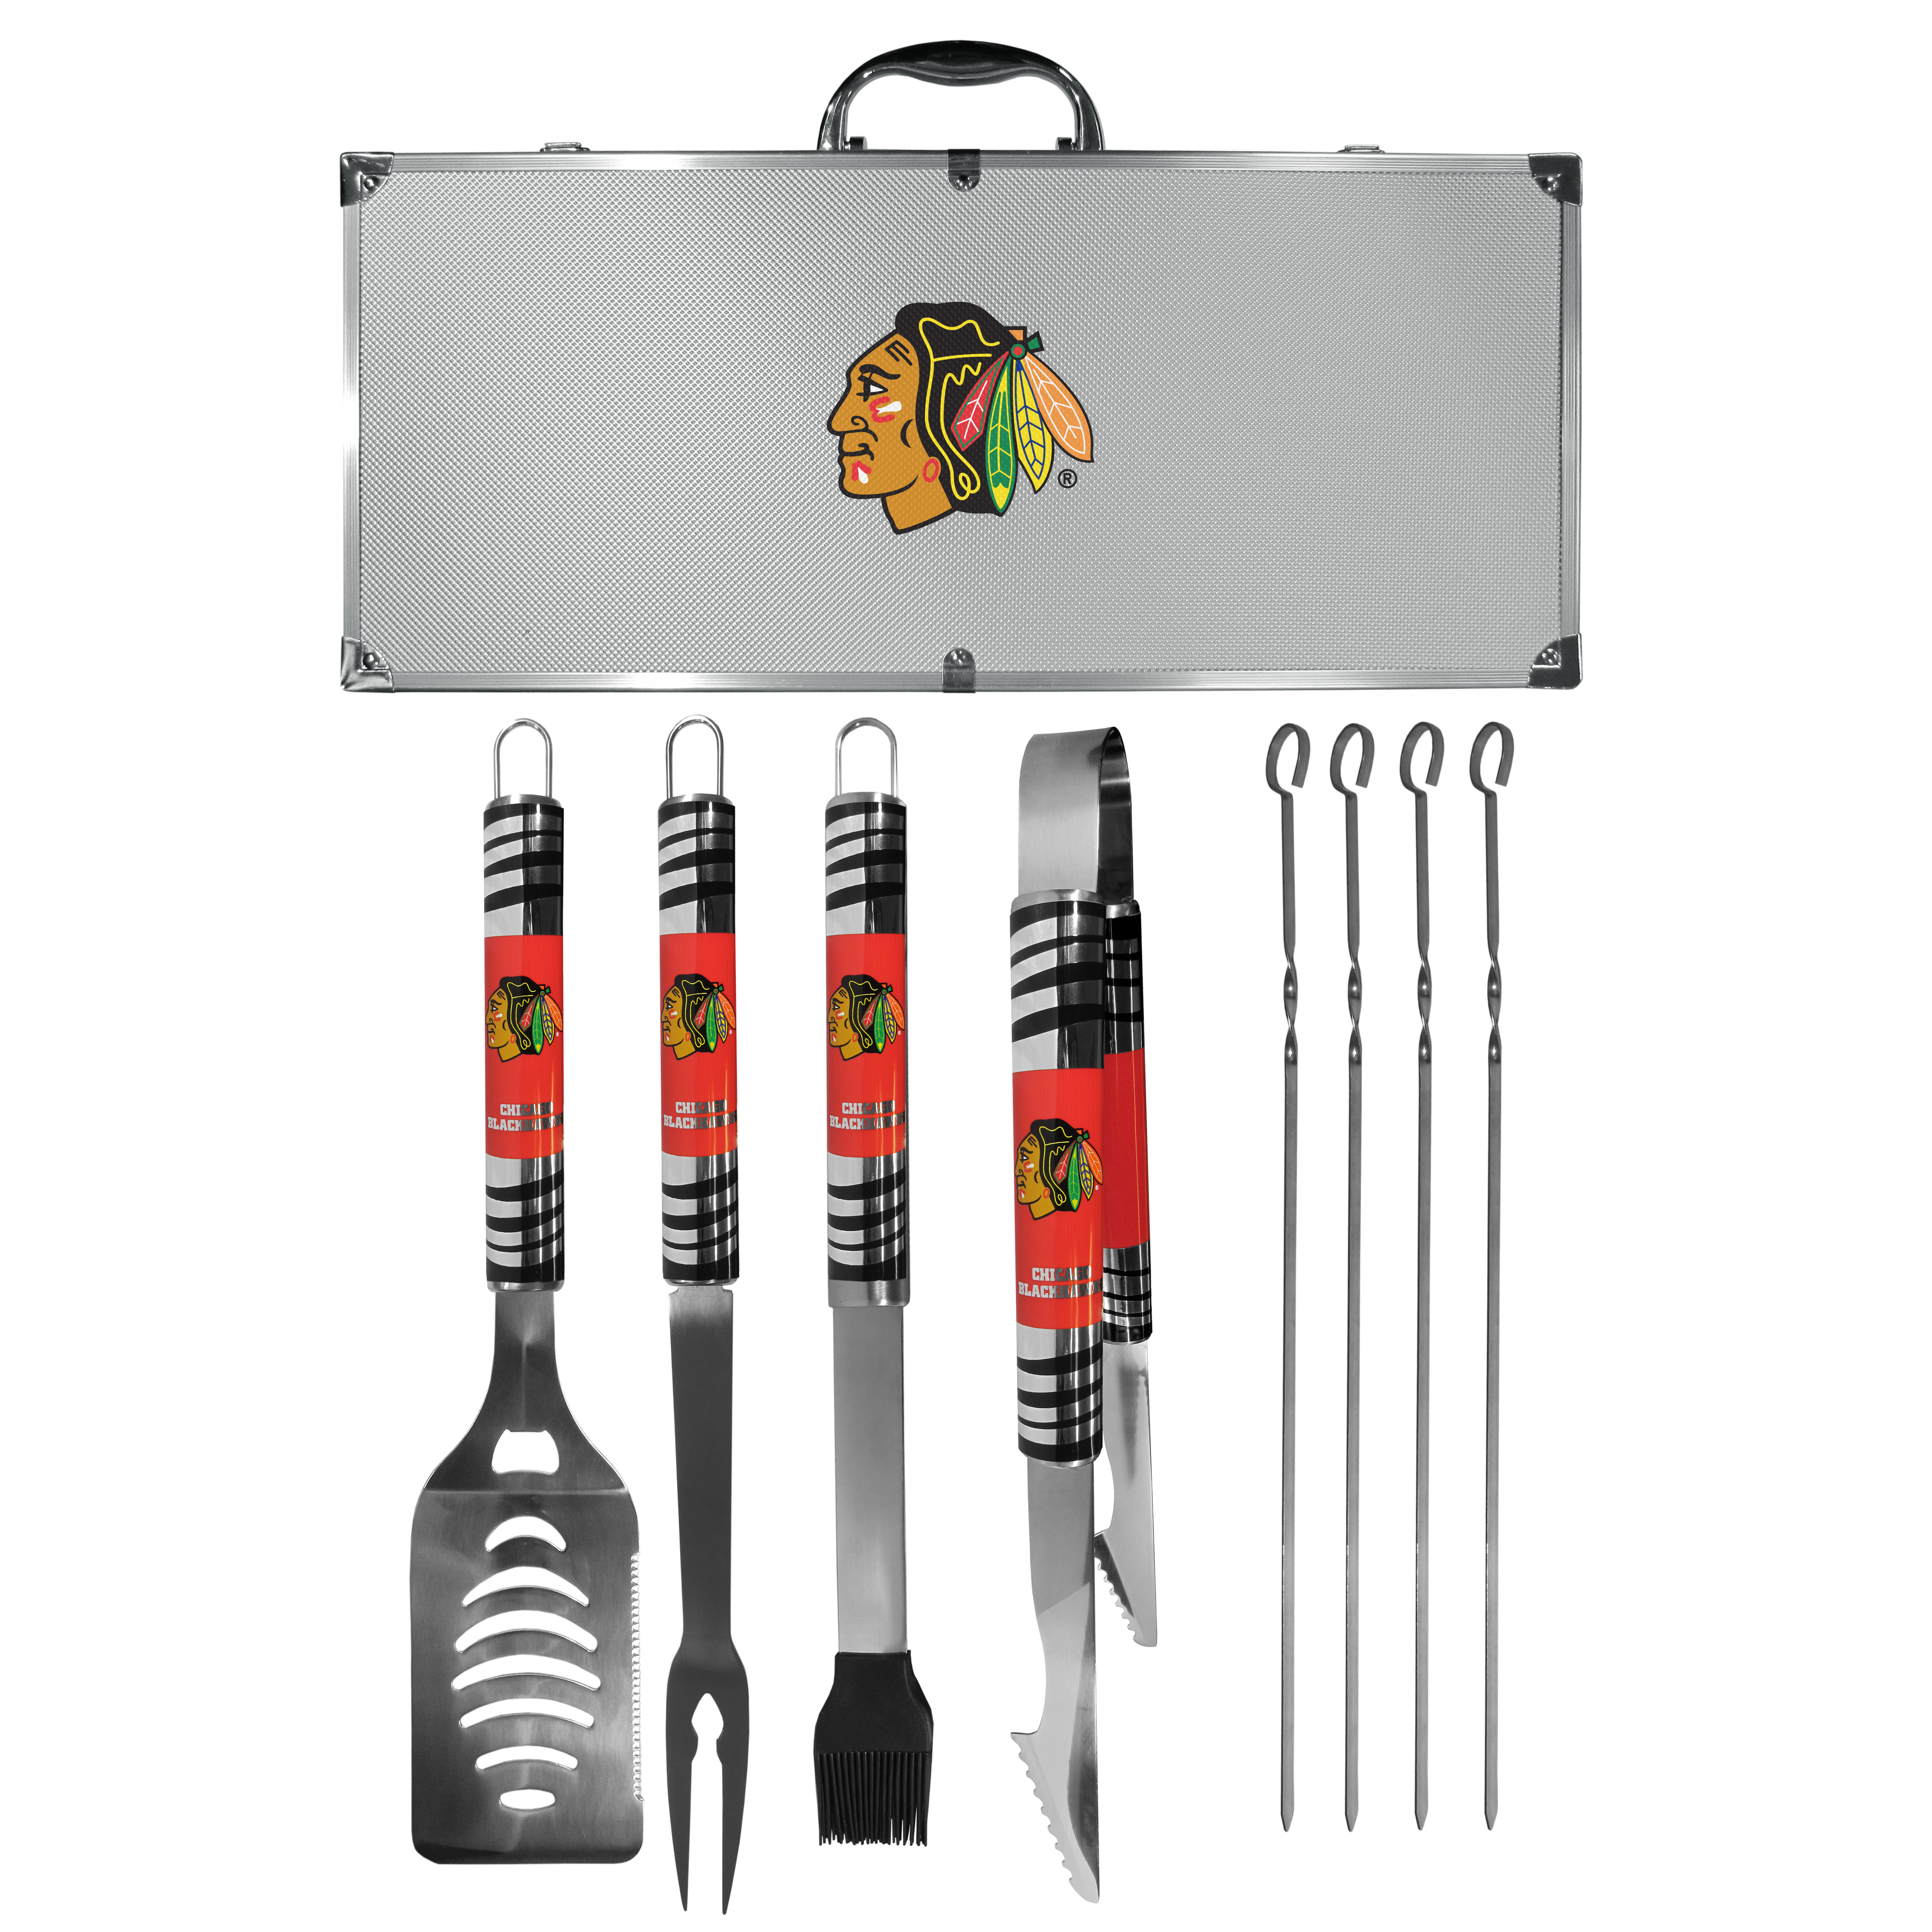 Chicago Blackhawks® 8 pc Tailgater BBQ Set - This is the ultimate Chicago Blackhawks® tailgate accessory! The high quality, 420 grade stainless steel tools are durable and well-made enough to make even the pickiest grill master smile. This complete grill accessory kit includes; 4 skewers, spatula with bottle opener and serrated knife edge, basting brush, tongs and a fork. The 18 inch metal carrying case is perfect for great outdoor use making grilling an ease while camping, tailgating or while having a game day party on your patio. The tools are 17 inches long and feature vivid team graphics. The metal case features a large team emblem with exceptional detail. This high-end men's gift is sure to be a hit as a present on Father's Day or Christmas.